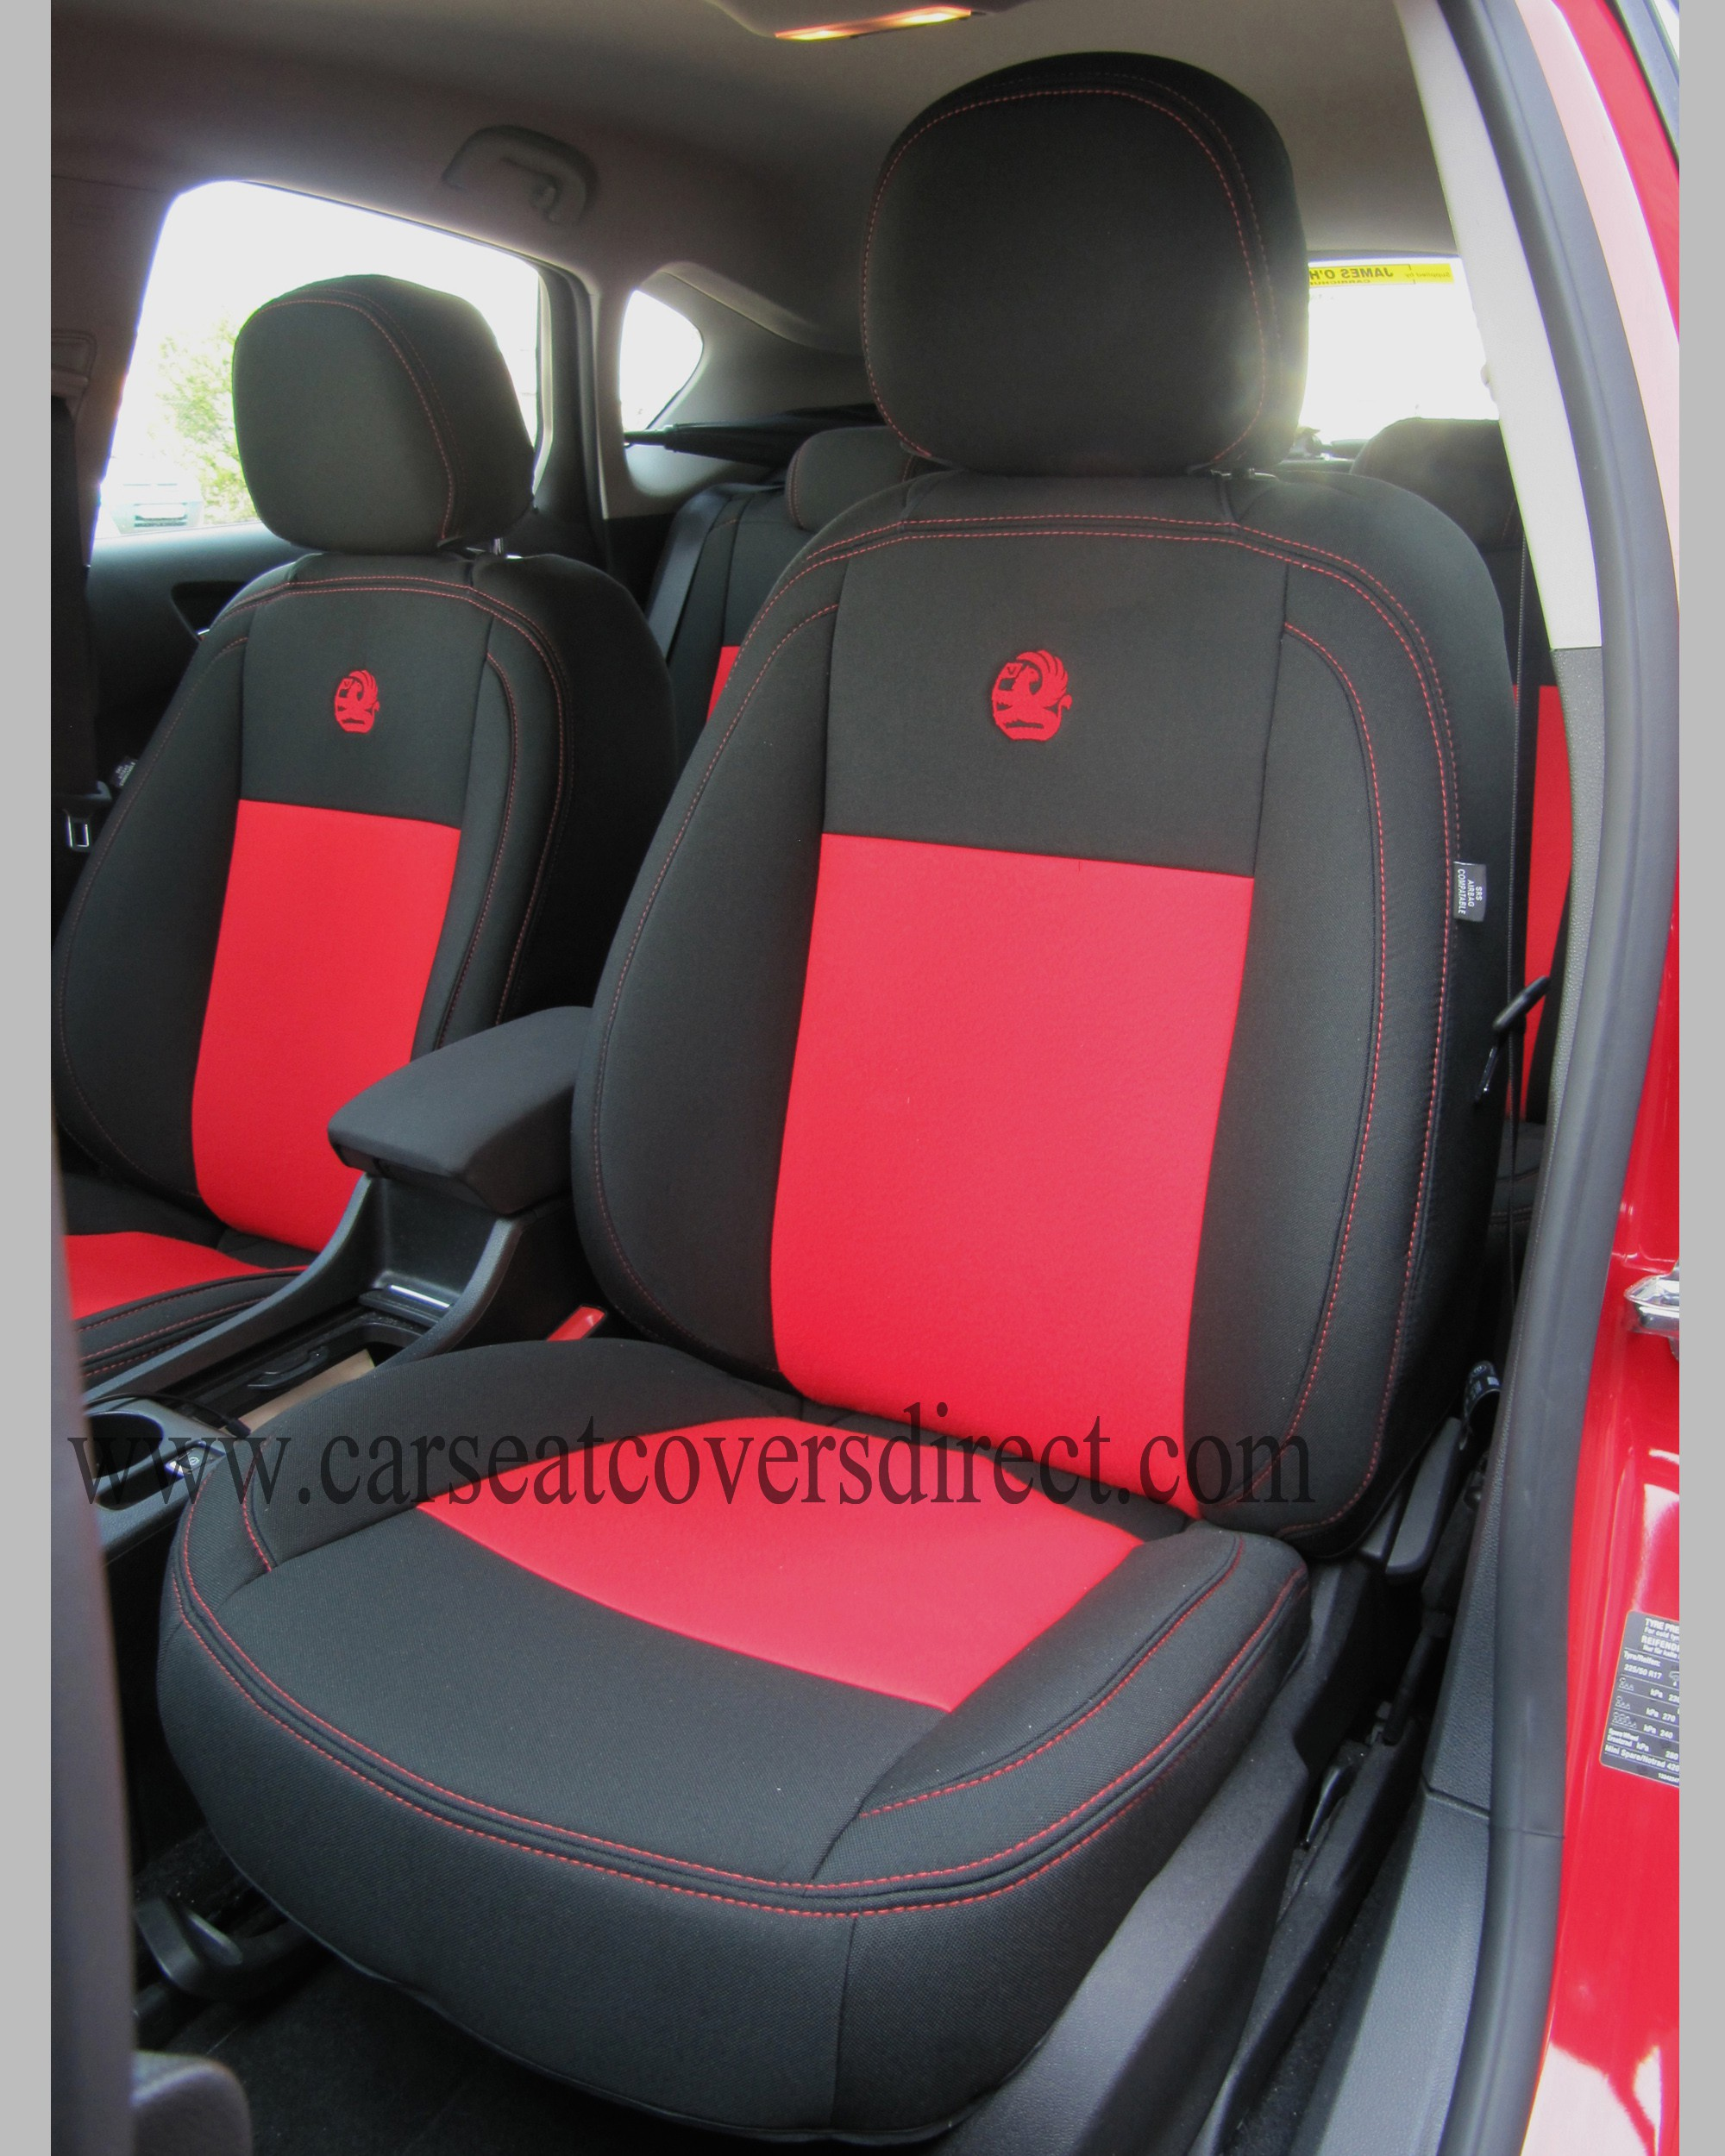 Search results for: 'opel' Car Seat Covers Direct - Tailored To Your